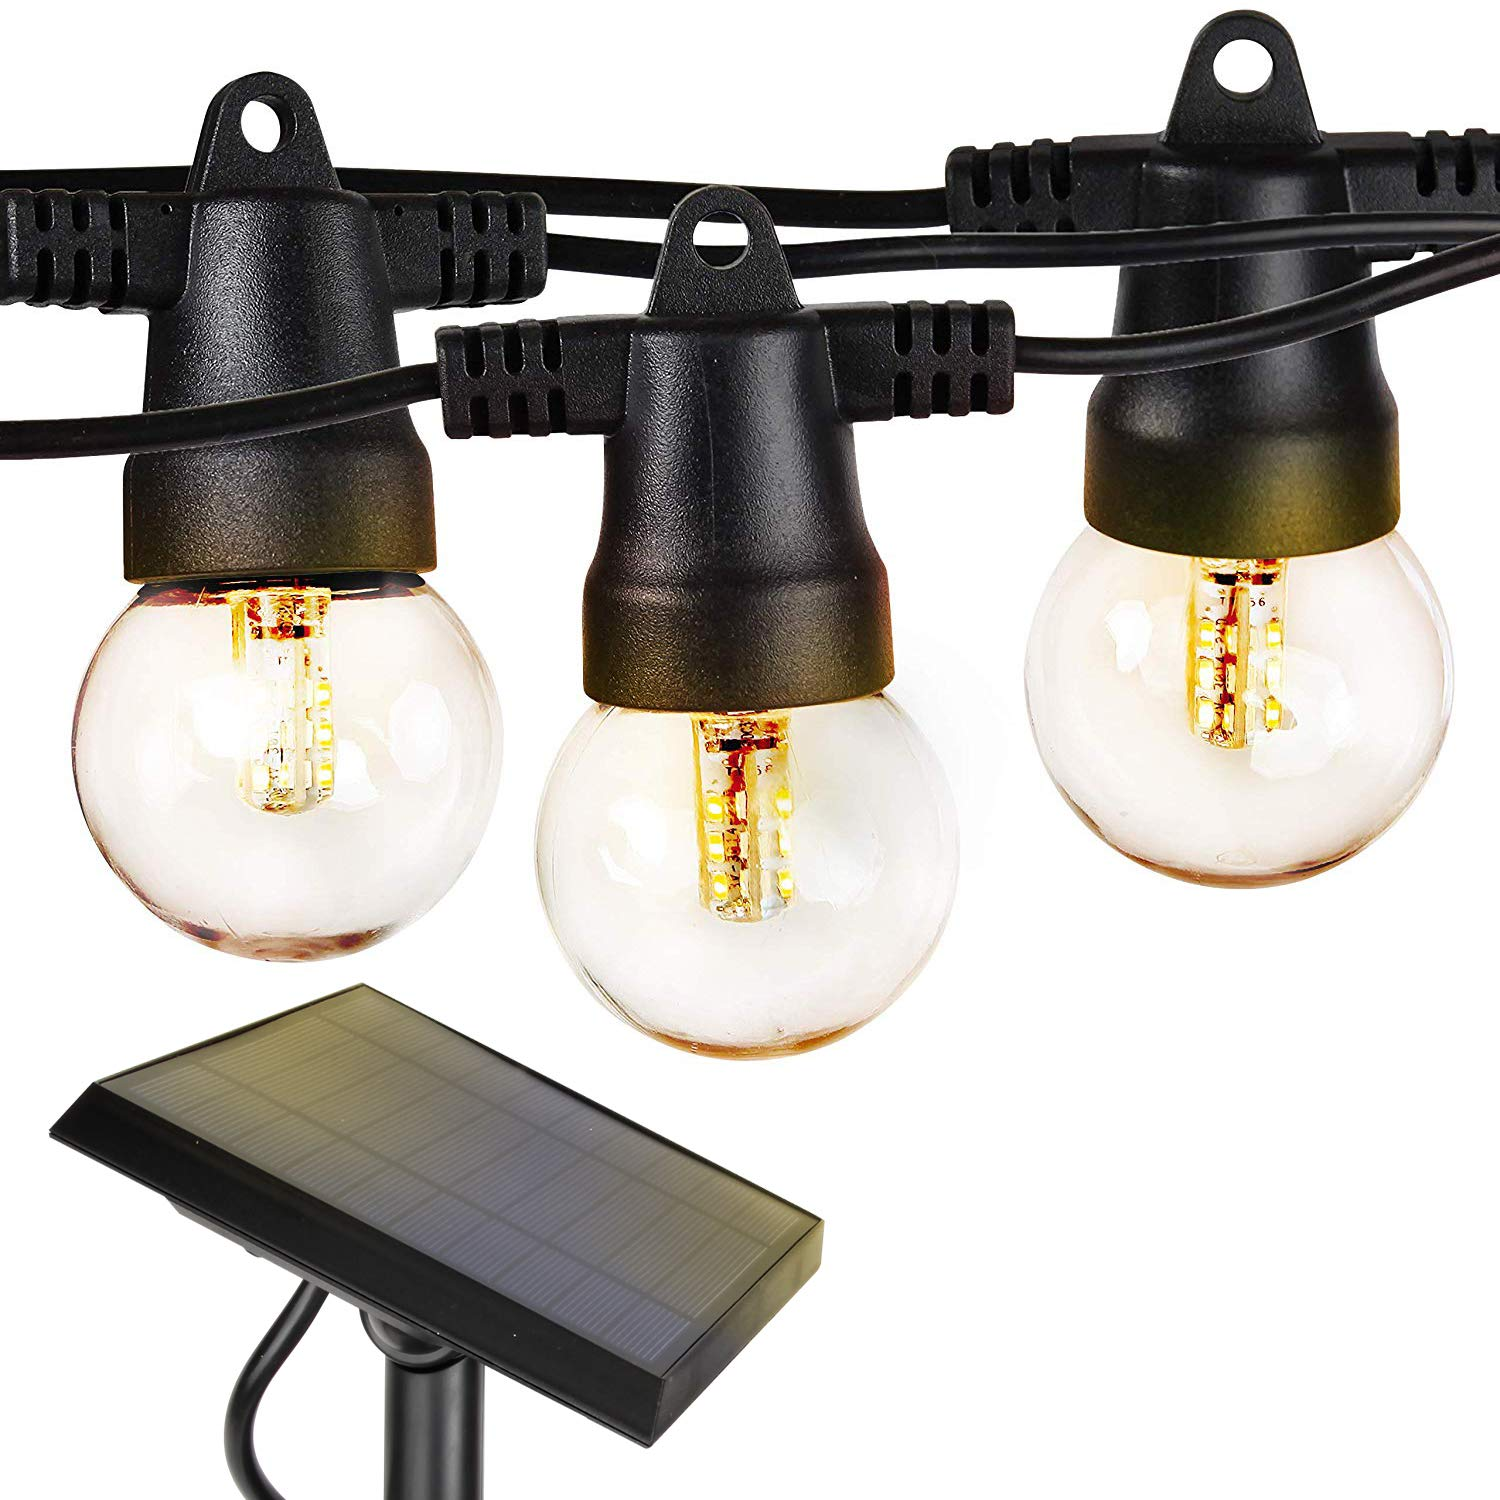 Brightech Ambience Pro - Waterproof Solar LED Outdoor String Lights - 1W Retro Edison Filament Bulbs - 27 Ft Globe Lights Create Bistro Ambience In Your Yard, Pergola - Soft White by Brightech